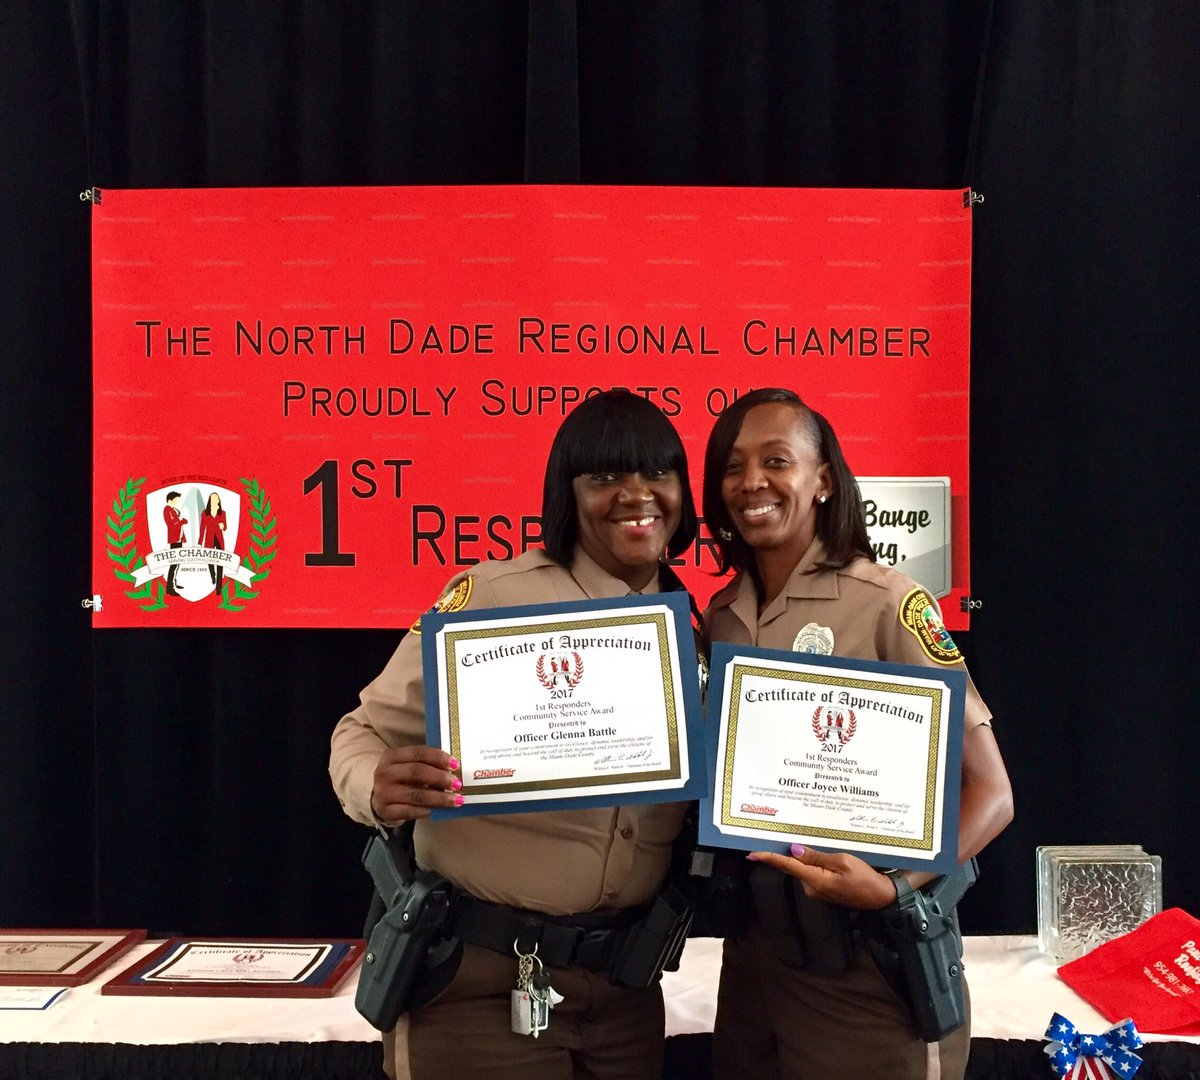 Miami dade police on twitter officers joyce williams glenna miami dade police on twitter officers joyce williams glenna battle were honored by the north dade regional chamber of commerce for their contributions 1betcityfo Image collections